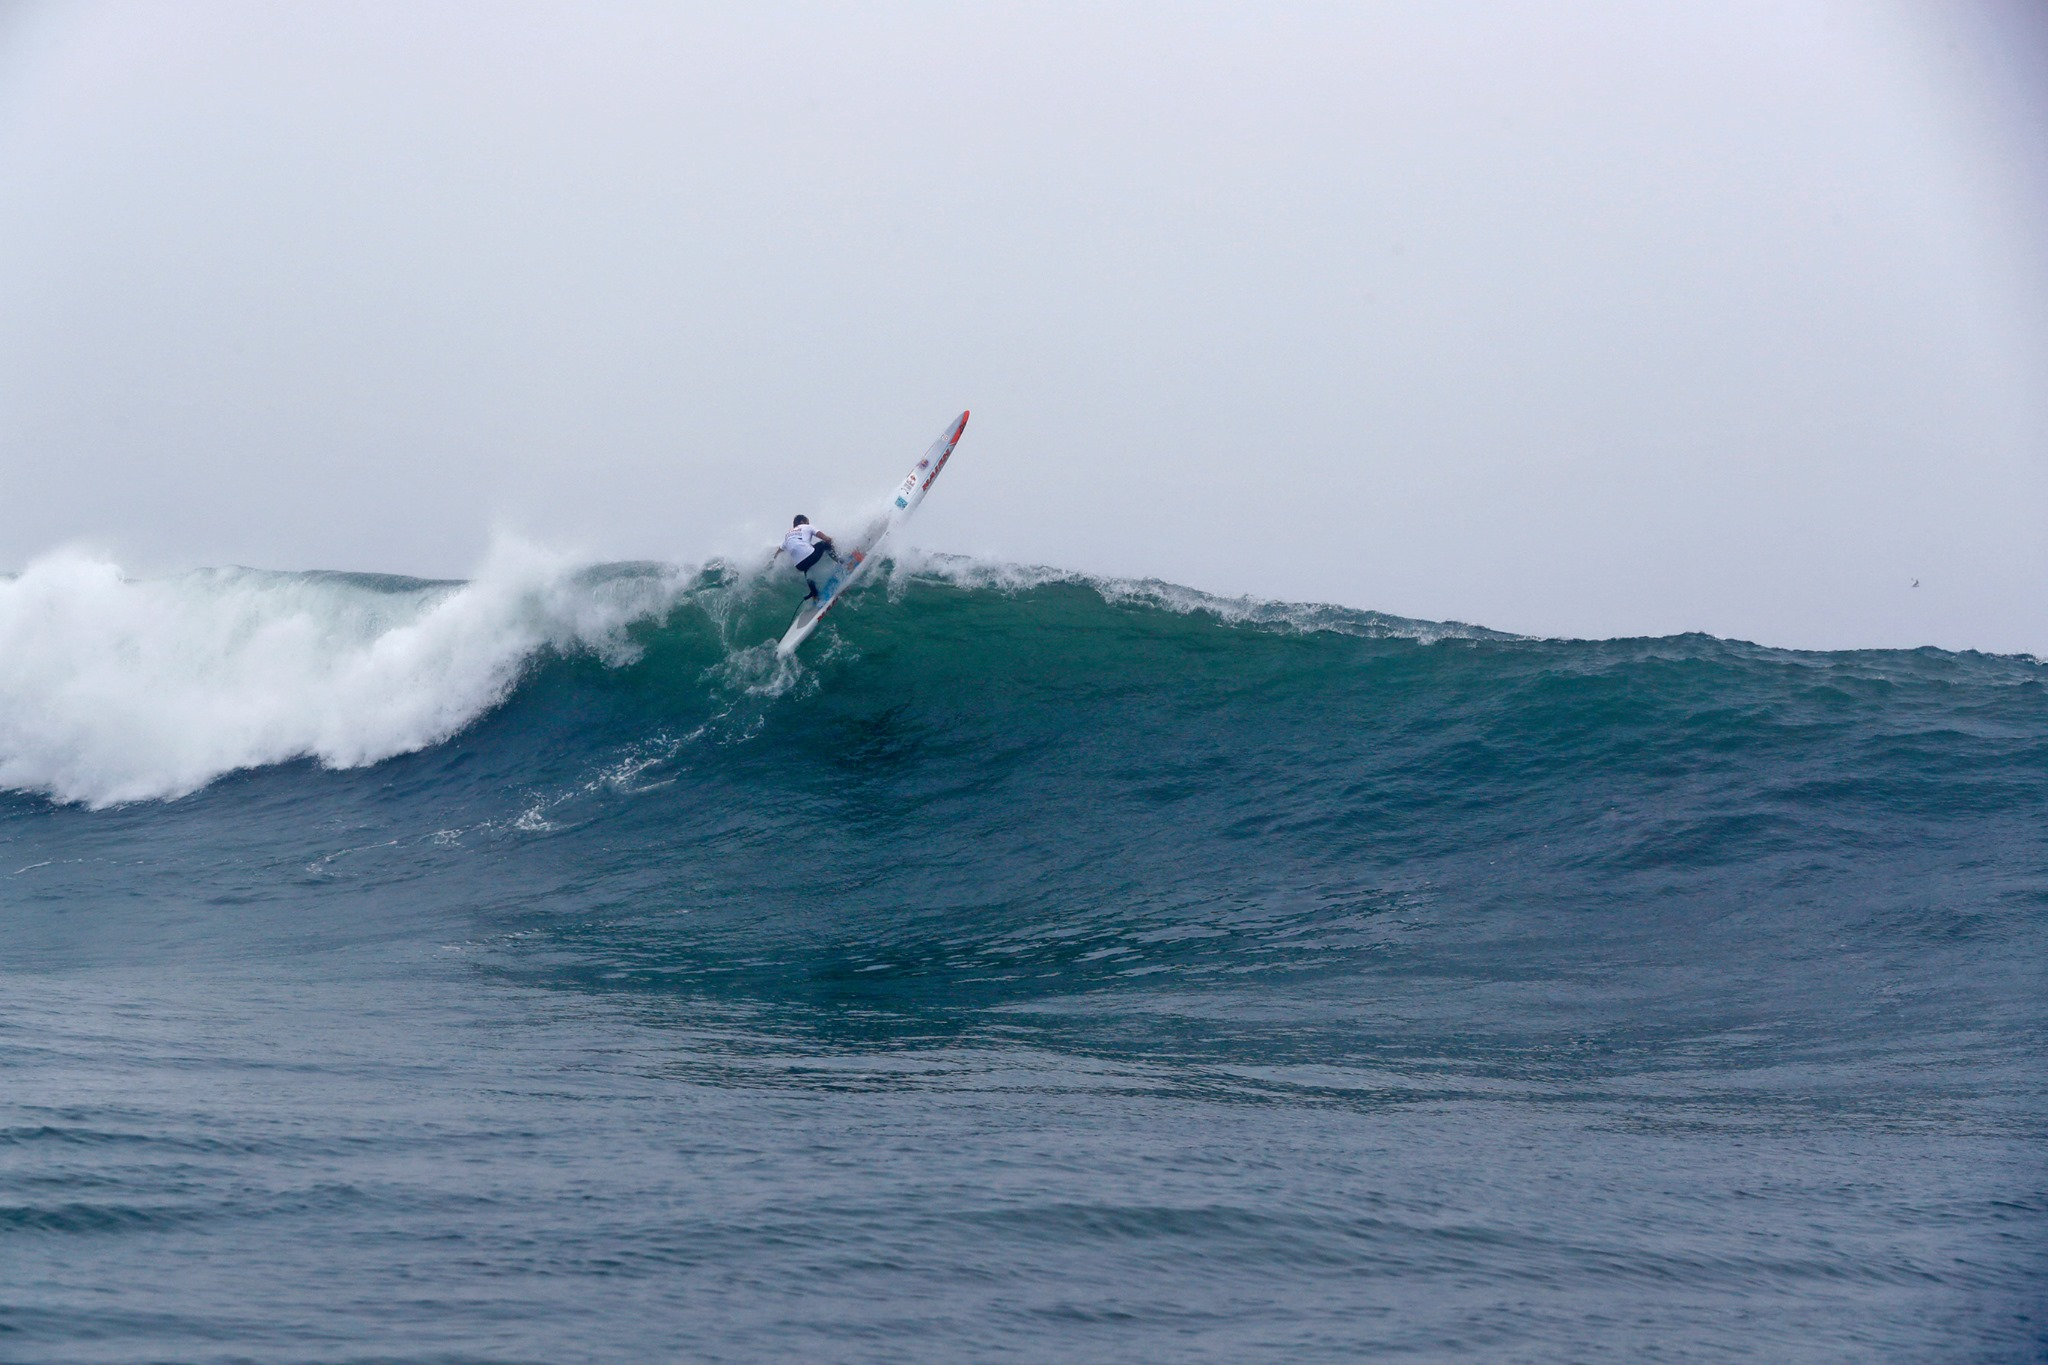 Amazing SUP skills in heavy conditions